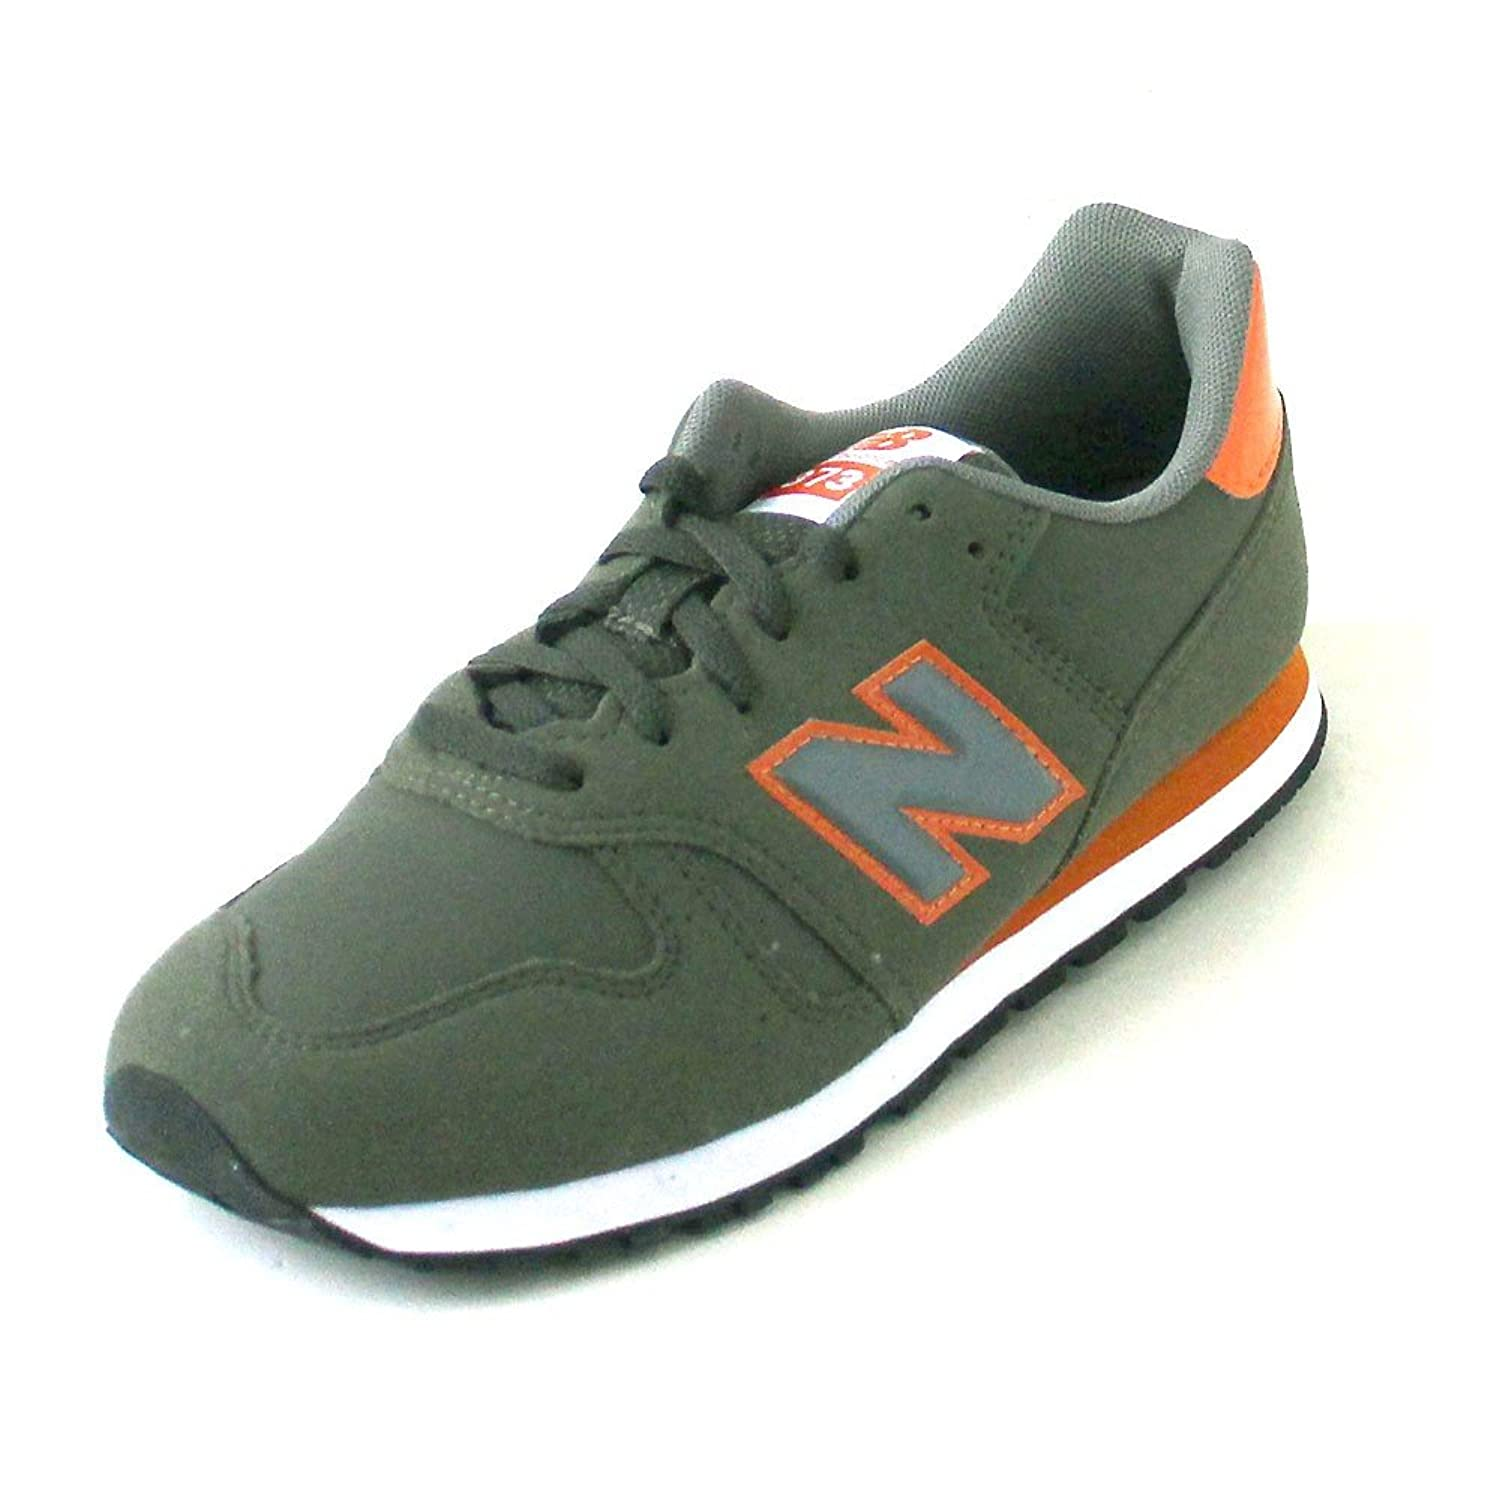 New Balance Zapatillas KJ373 Verde EU 39 (US 6.5)